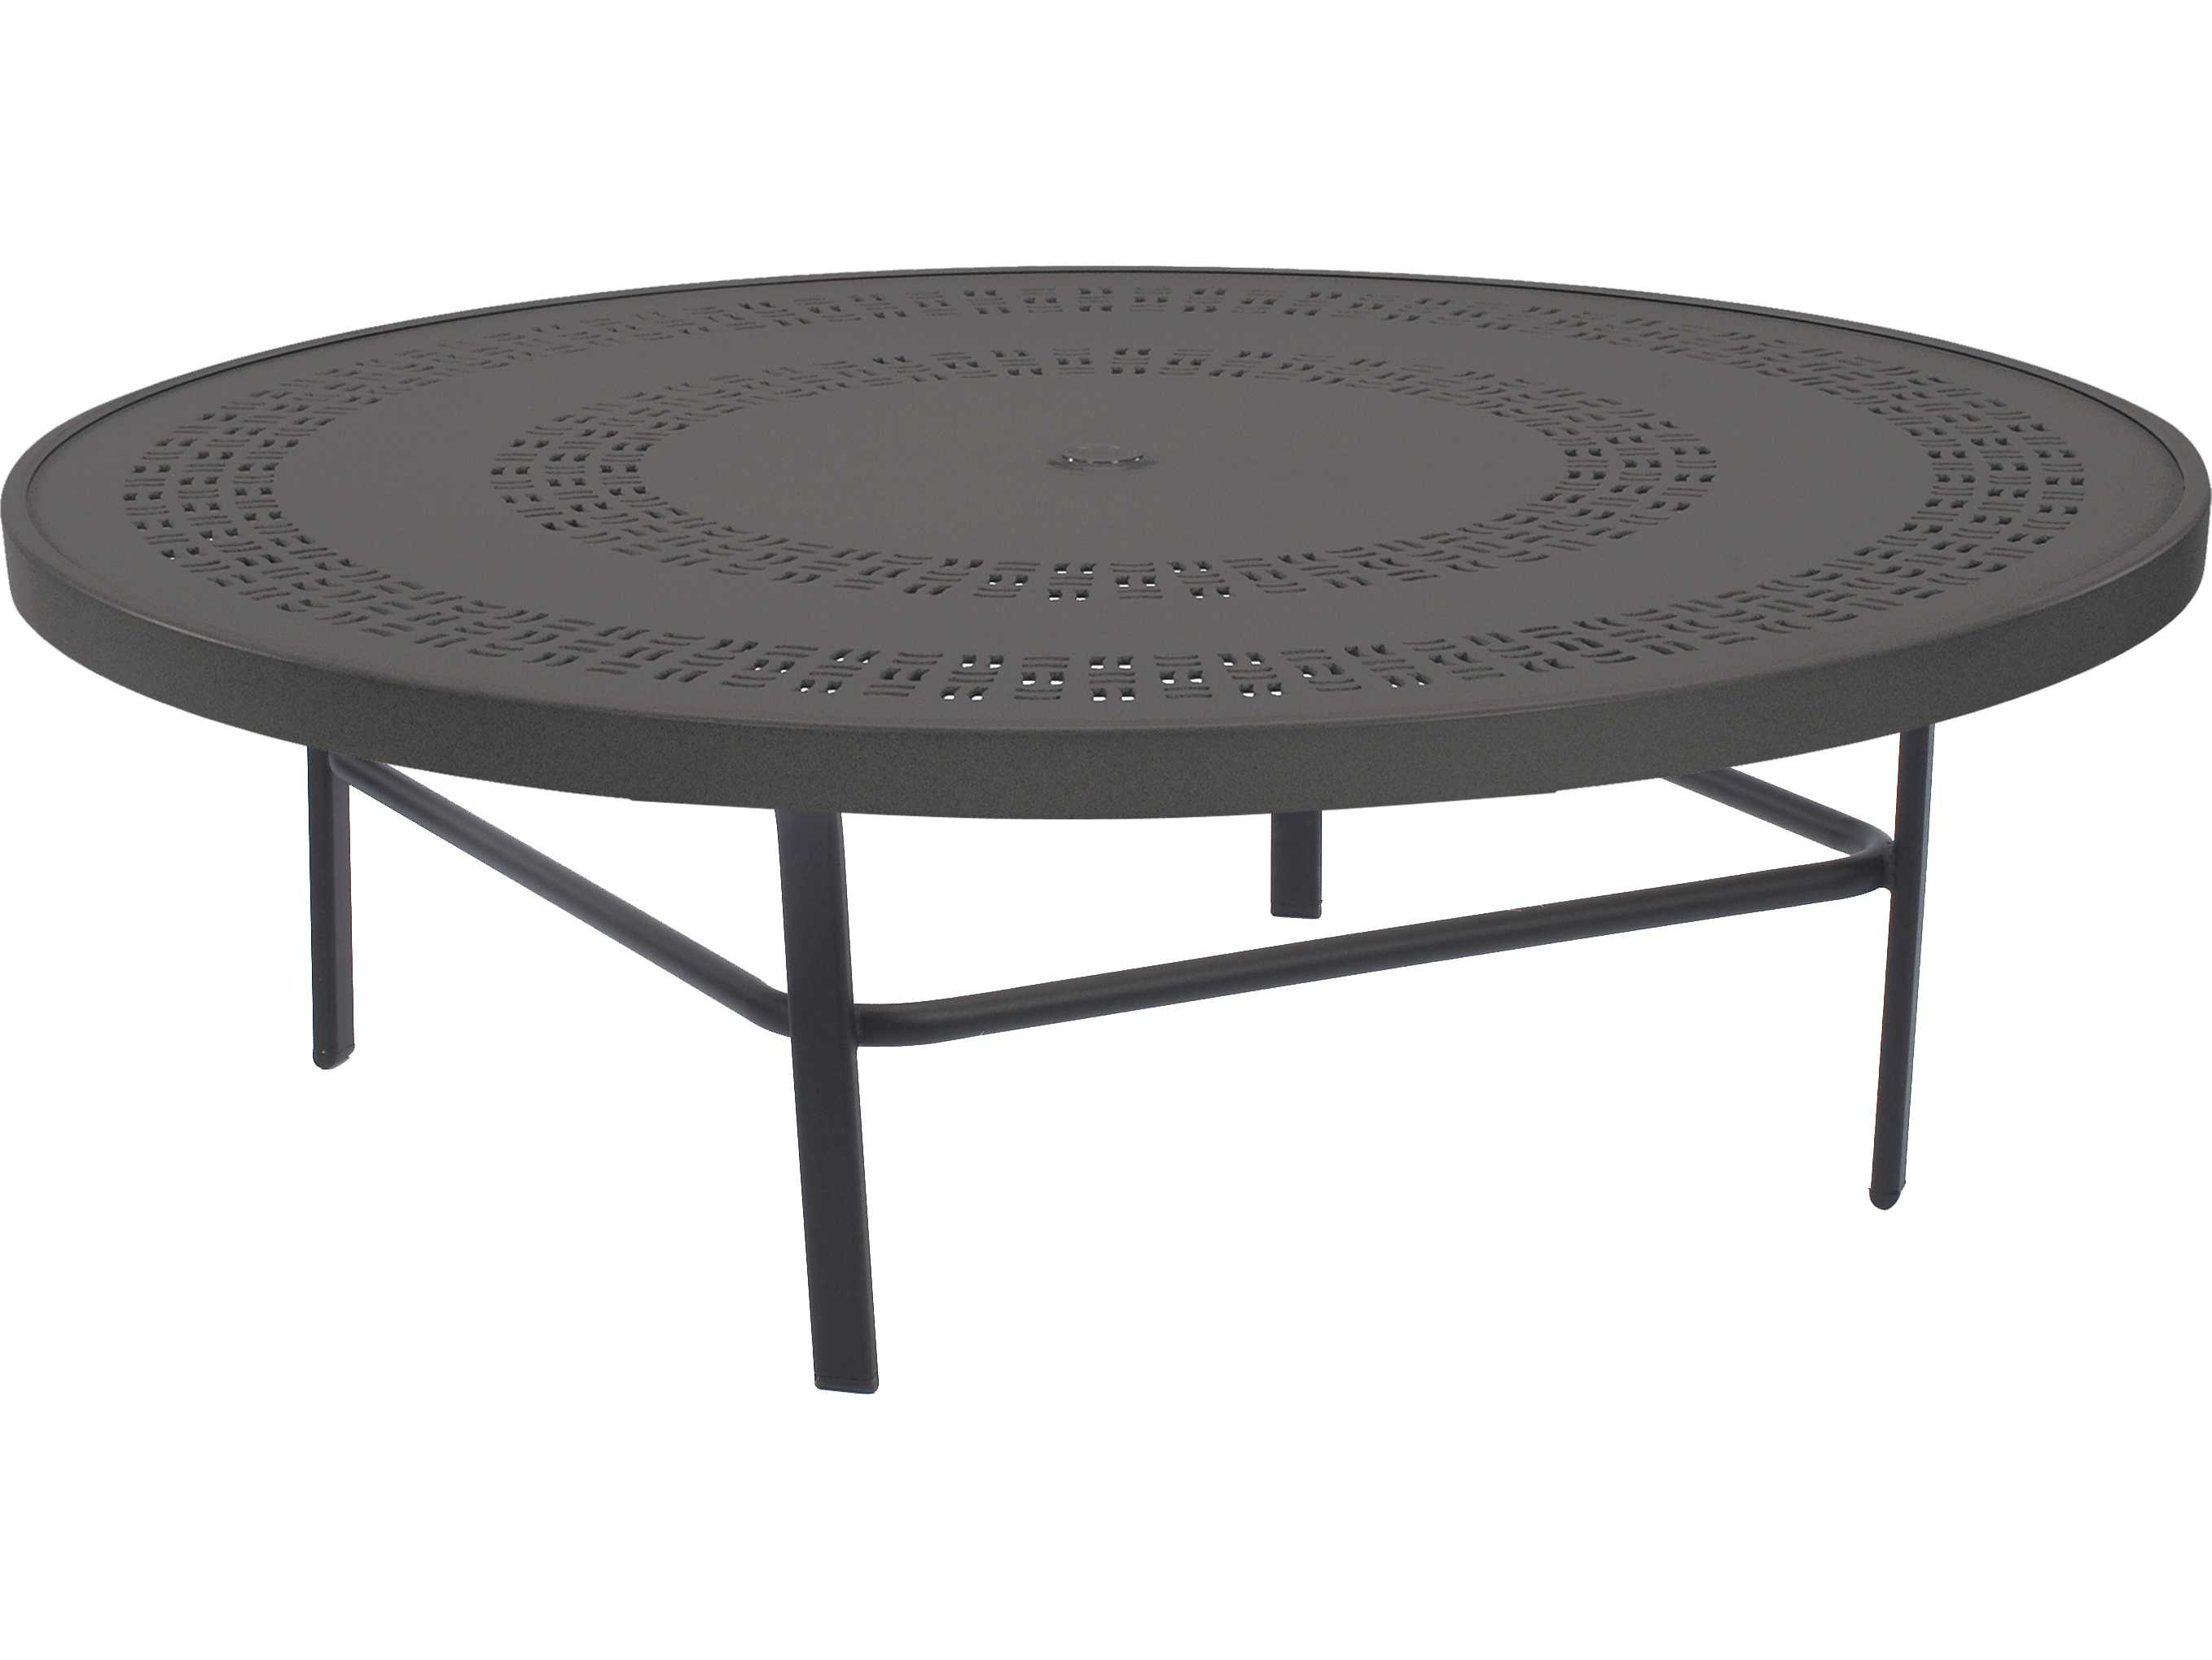 Windward Design Group Mayan Punched Aluminum 47 Round Table